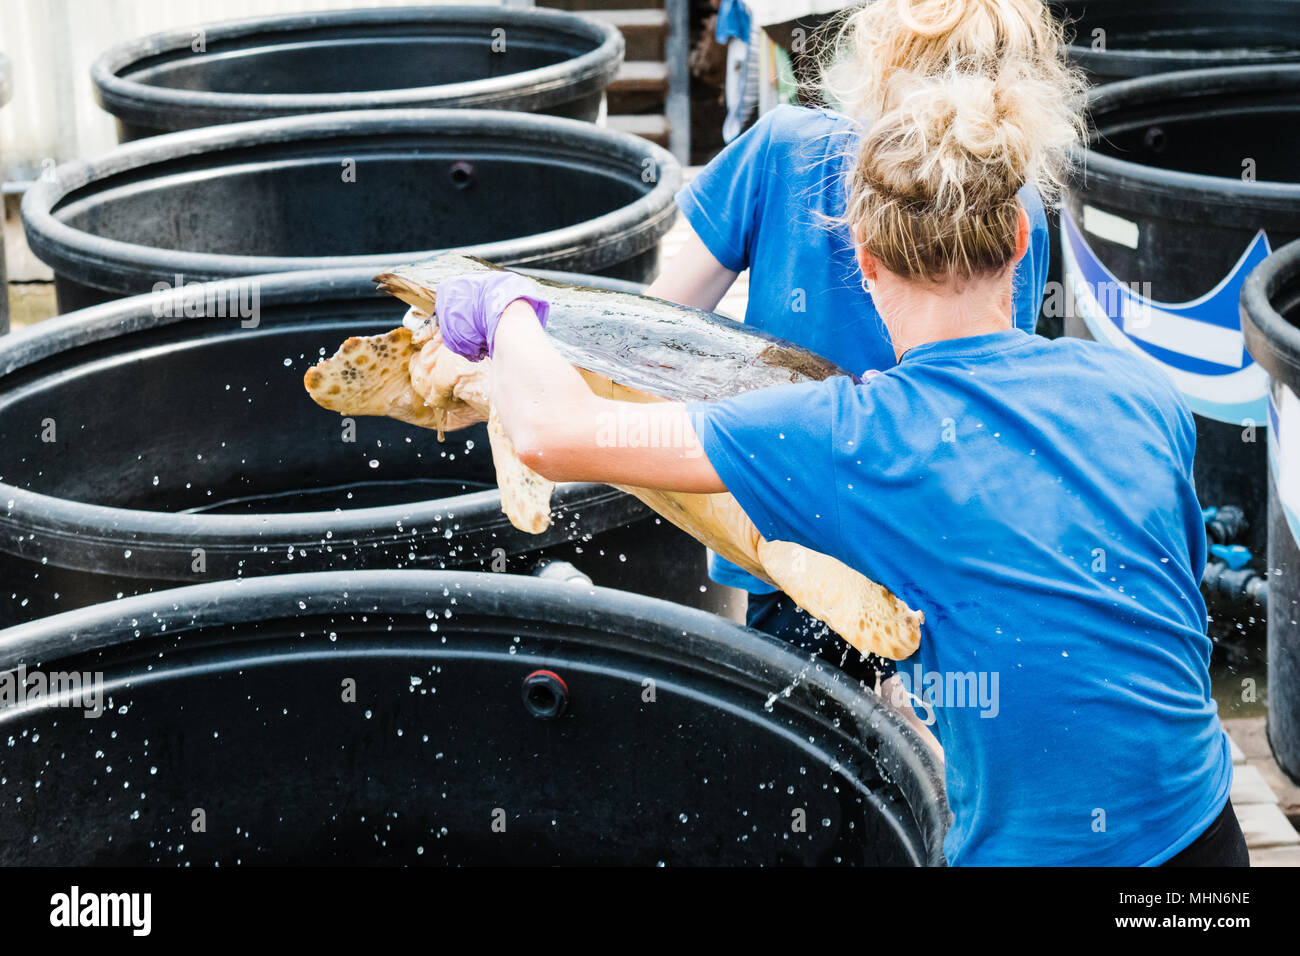 Turtle rescue team carry the sea turtle to medical treatment at Sea Turtle Rescue Centre, Glyfada, Greece - Stock Image